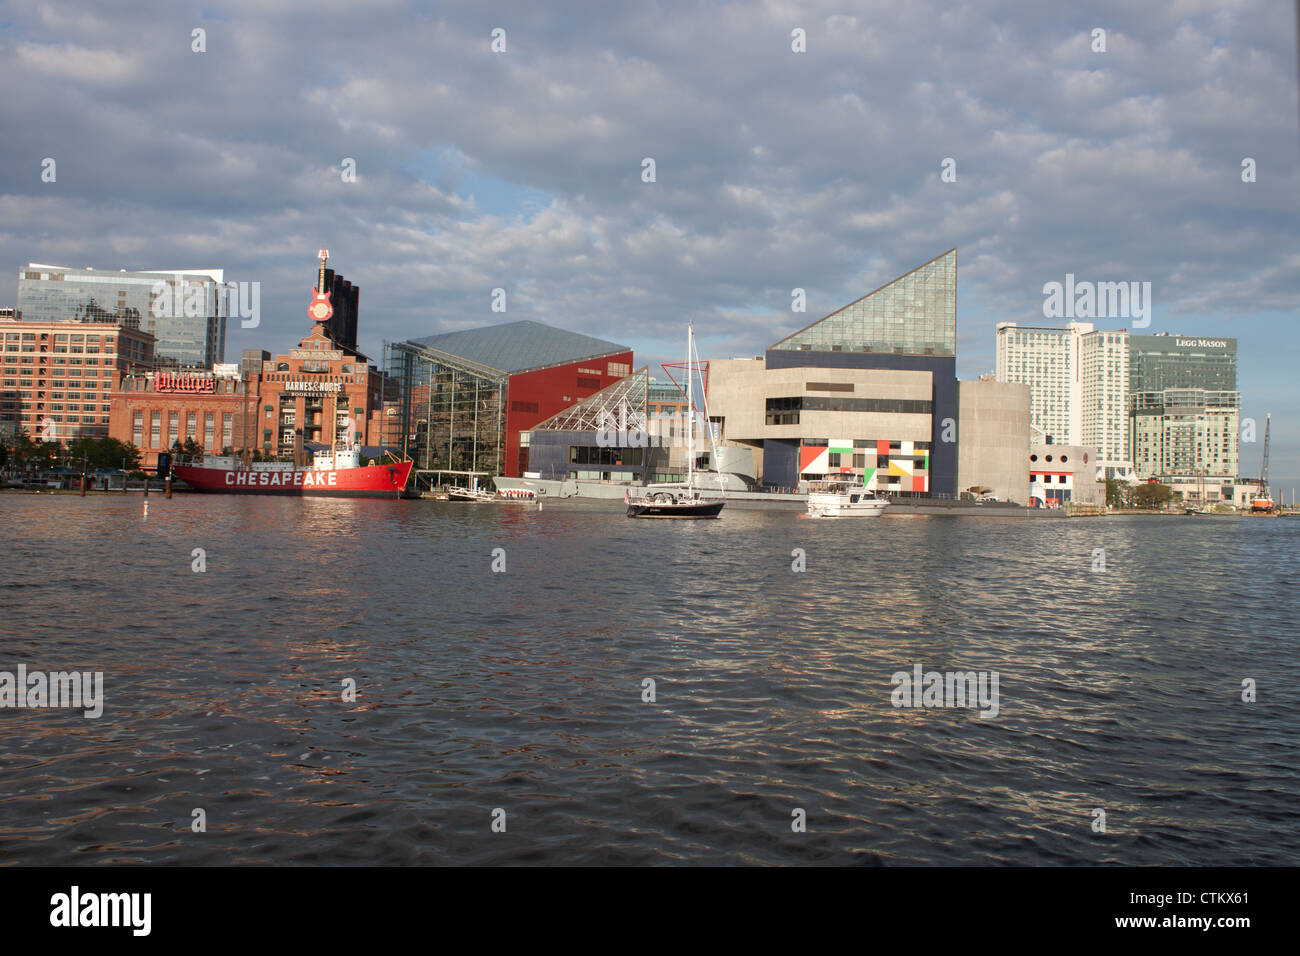 Baltimore Harbor Waterfront - Stock Image